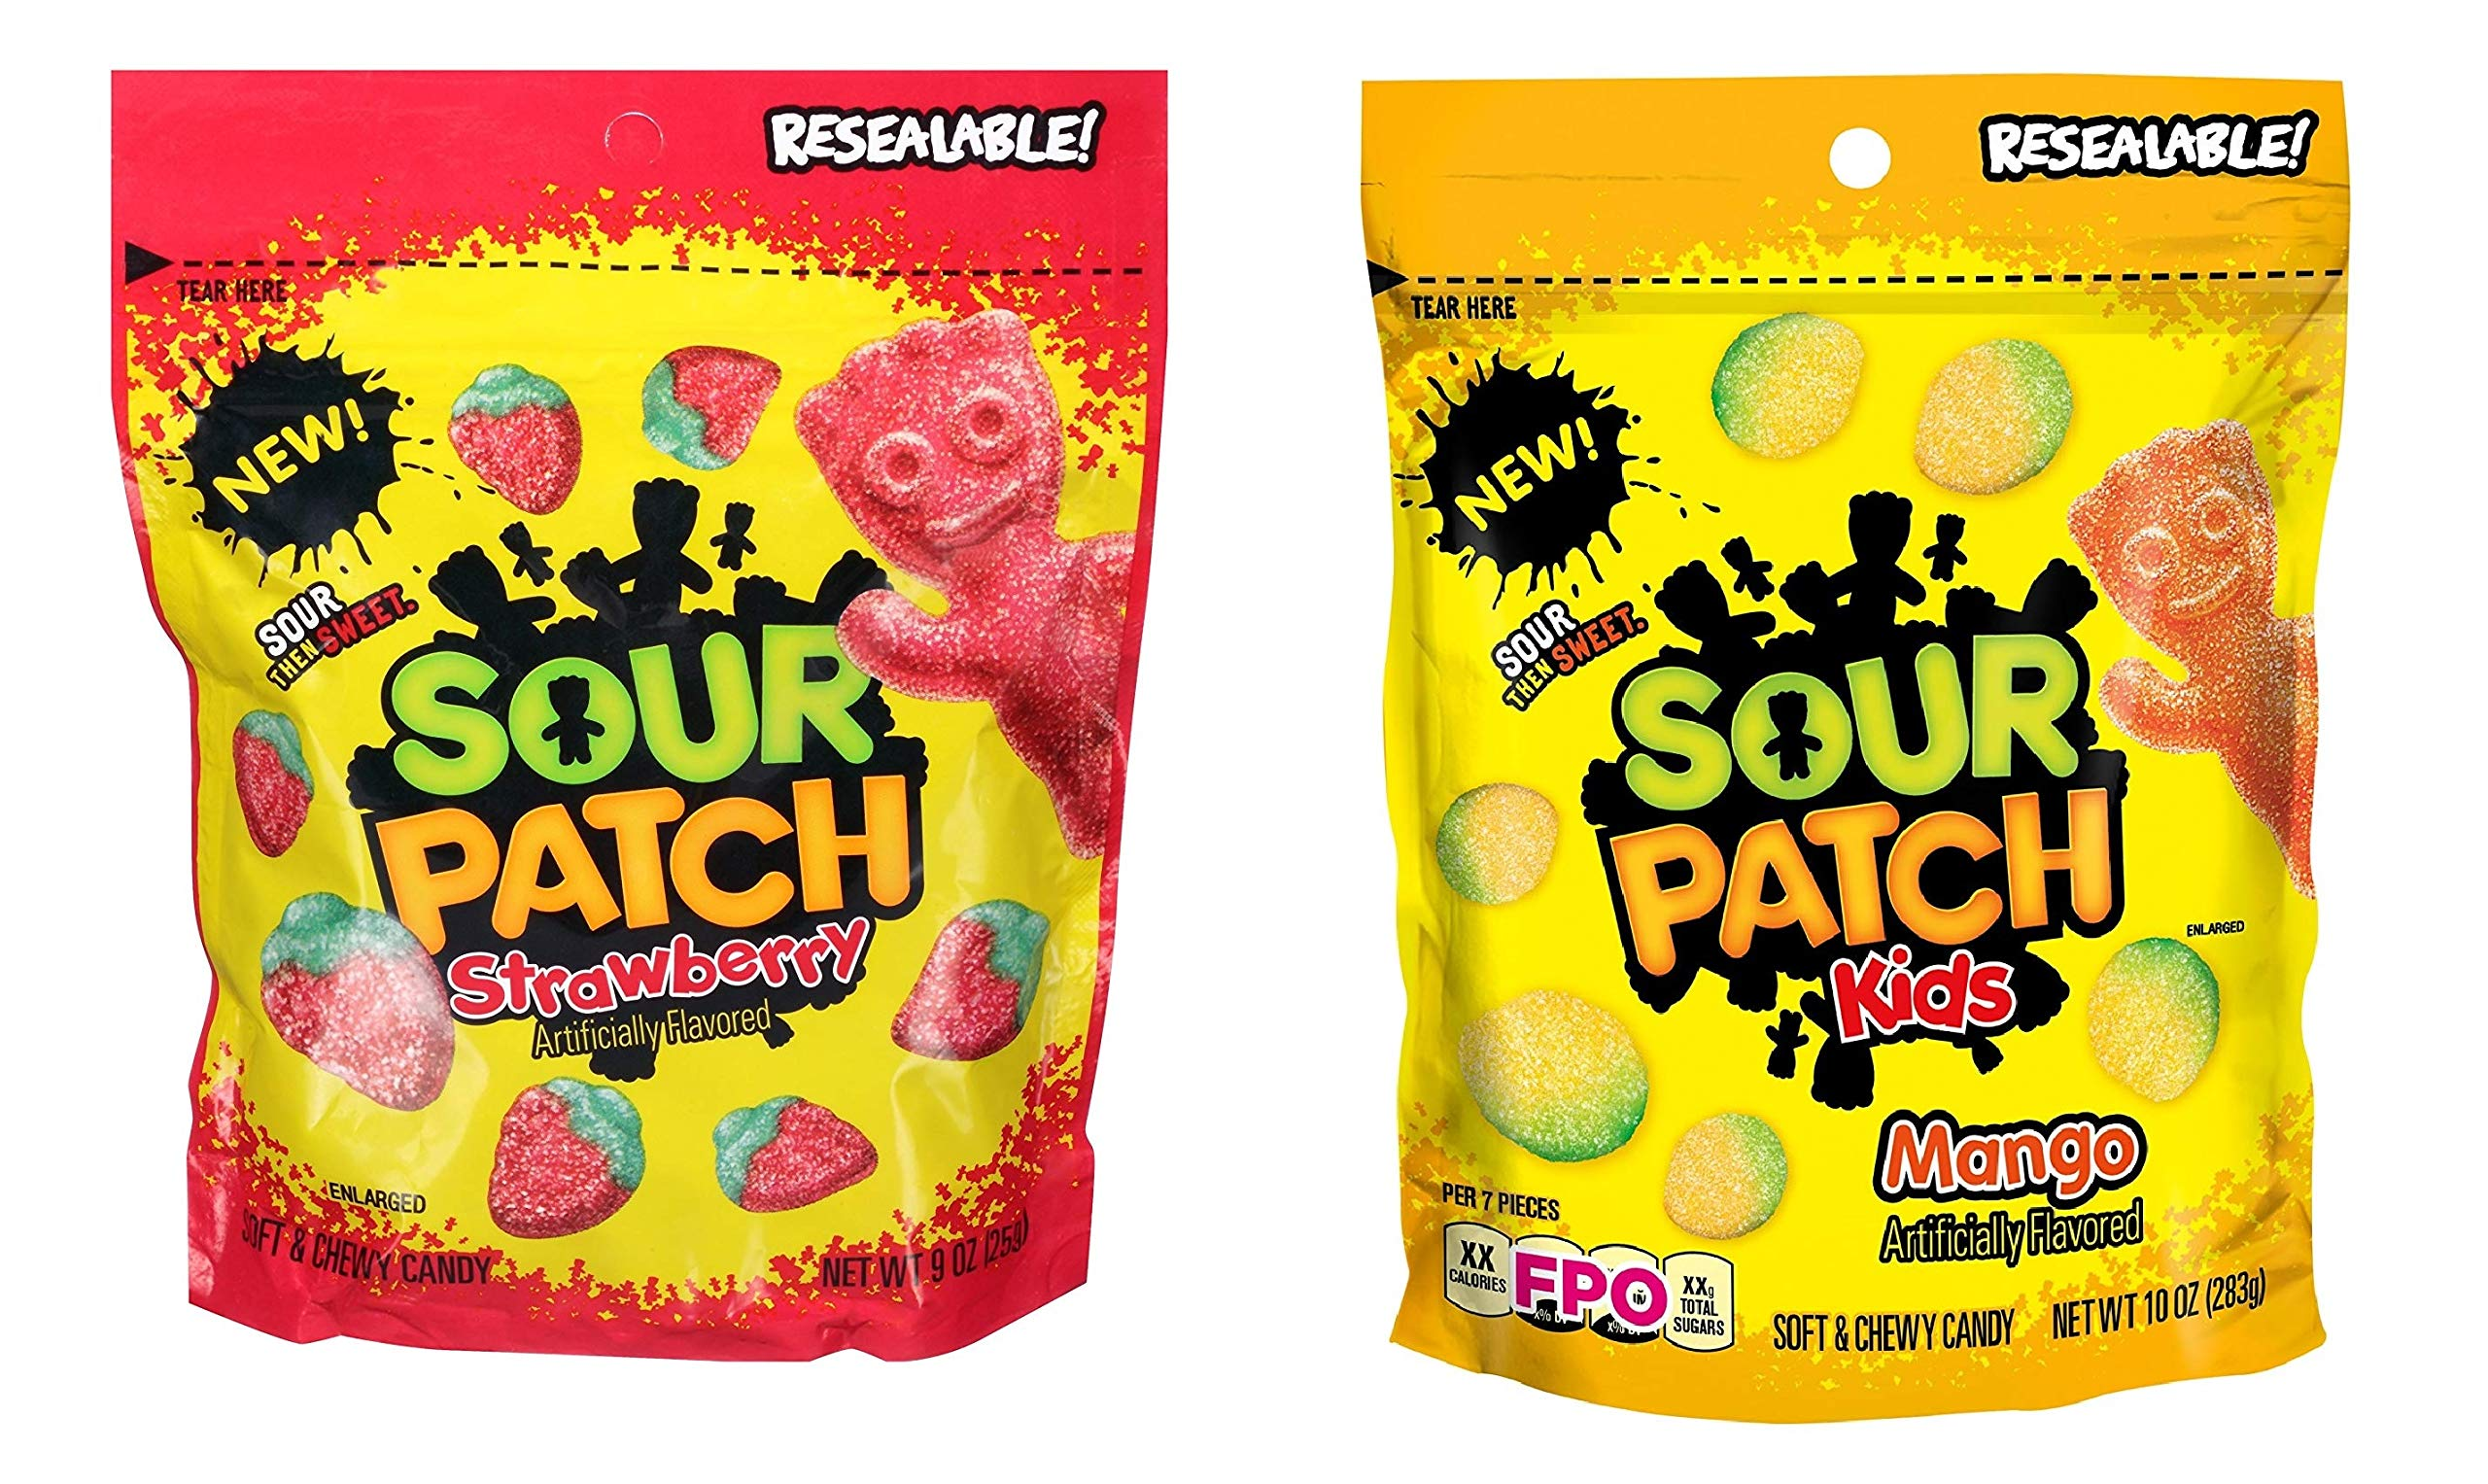 Sour Patch Kids Soft & Chewy Candy, 10 Ounce Bag - 2 Pack (Mango & Strawberry)